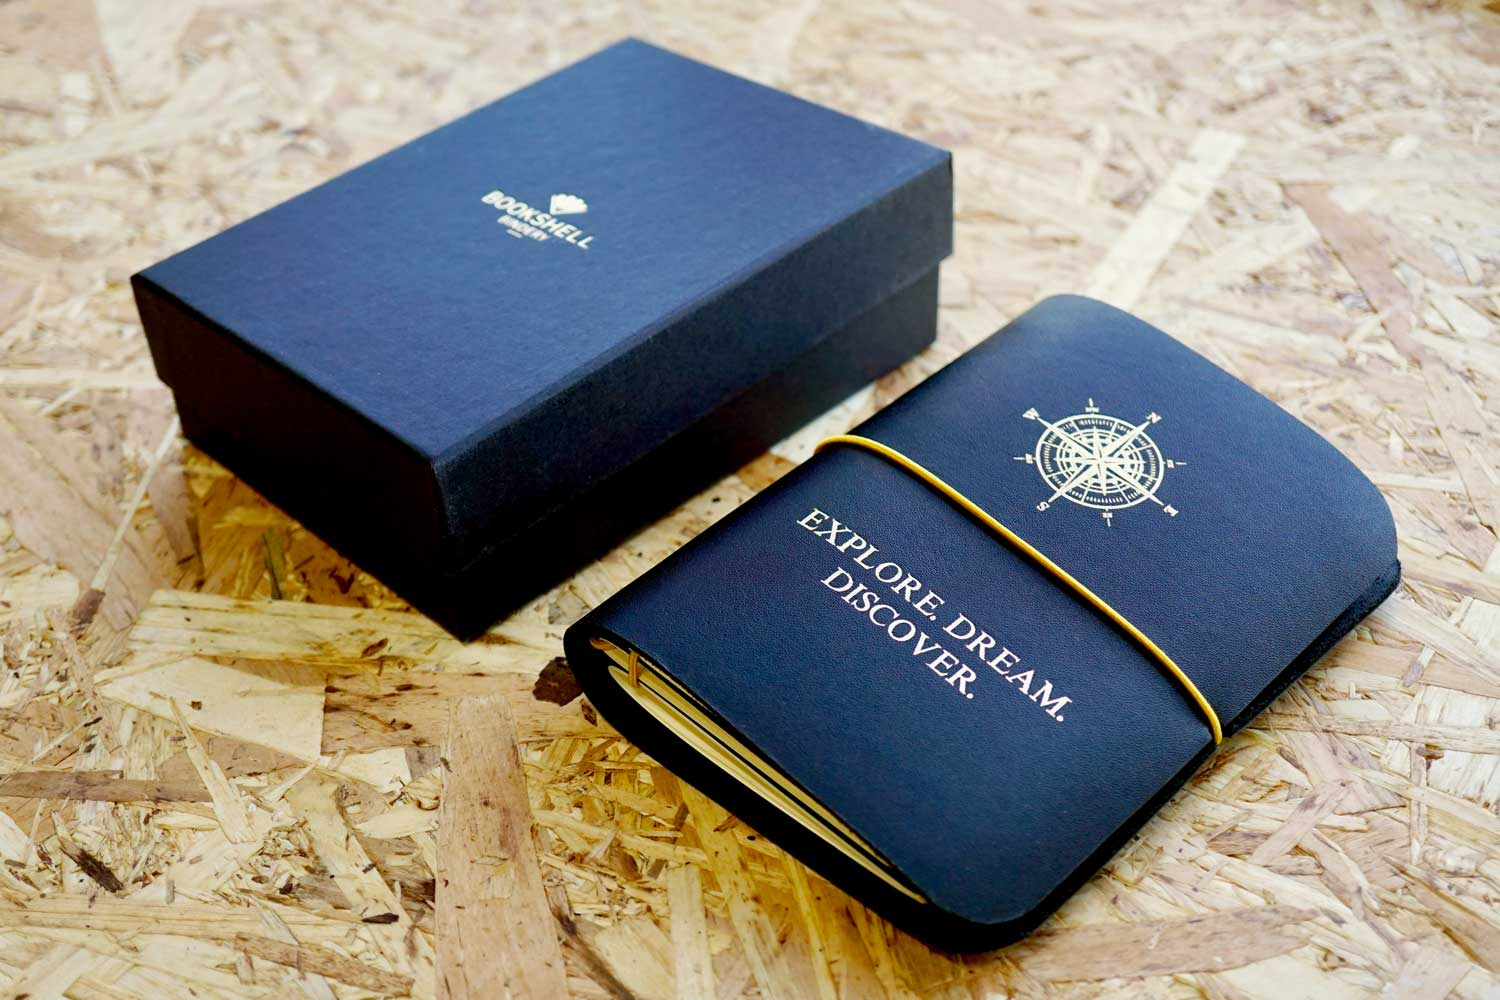 Never-ending journal, Explore. Dream. Discover; A6 leather travel journal with gold foiled compass on the cover